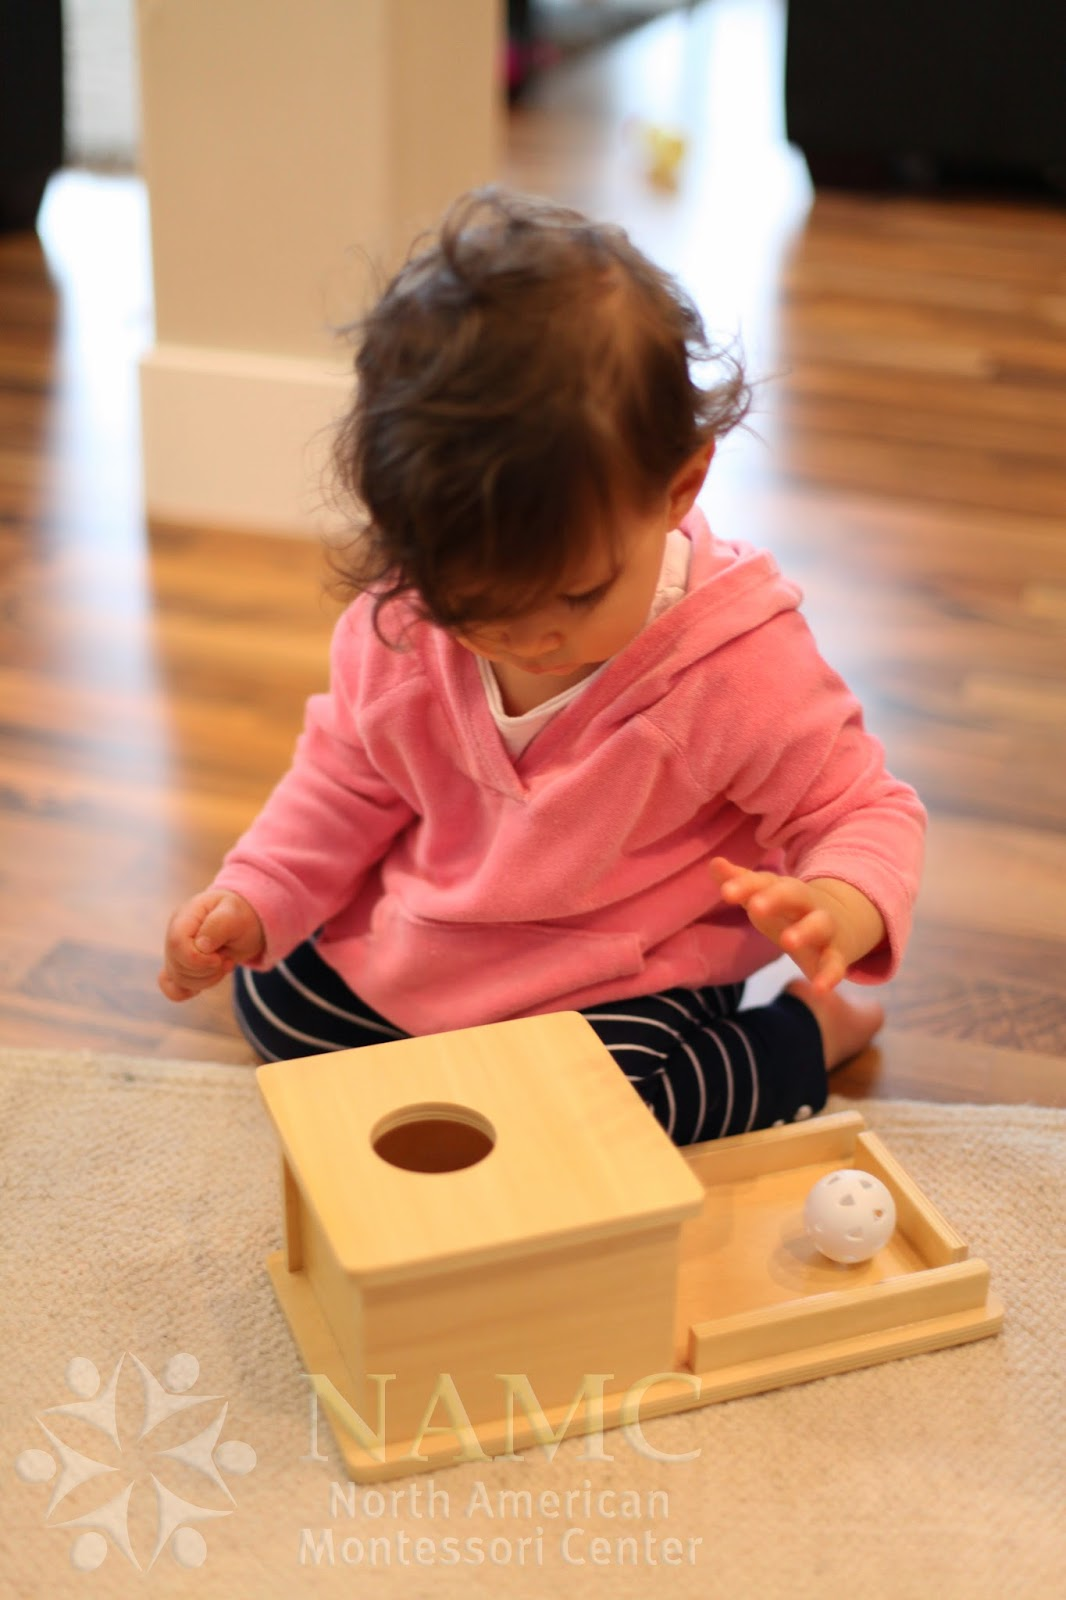 NAMC Montessori developing object permanence girl with box and ball